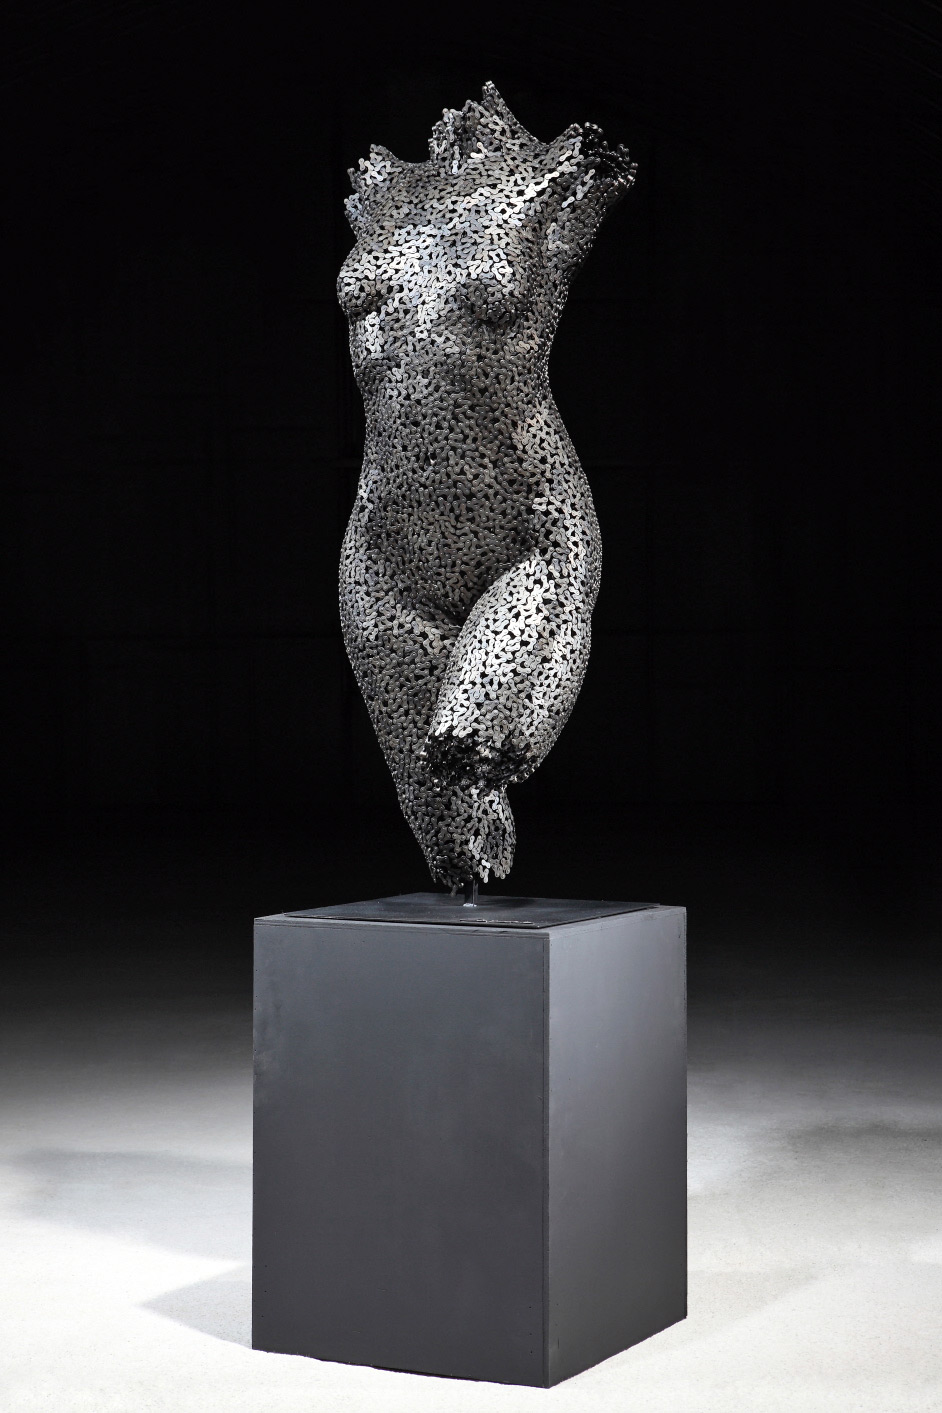 Seo Young Deok - Chain Sculptures   Collater.al